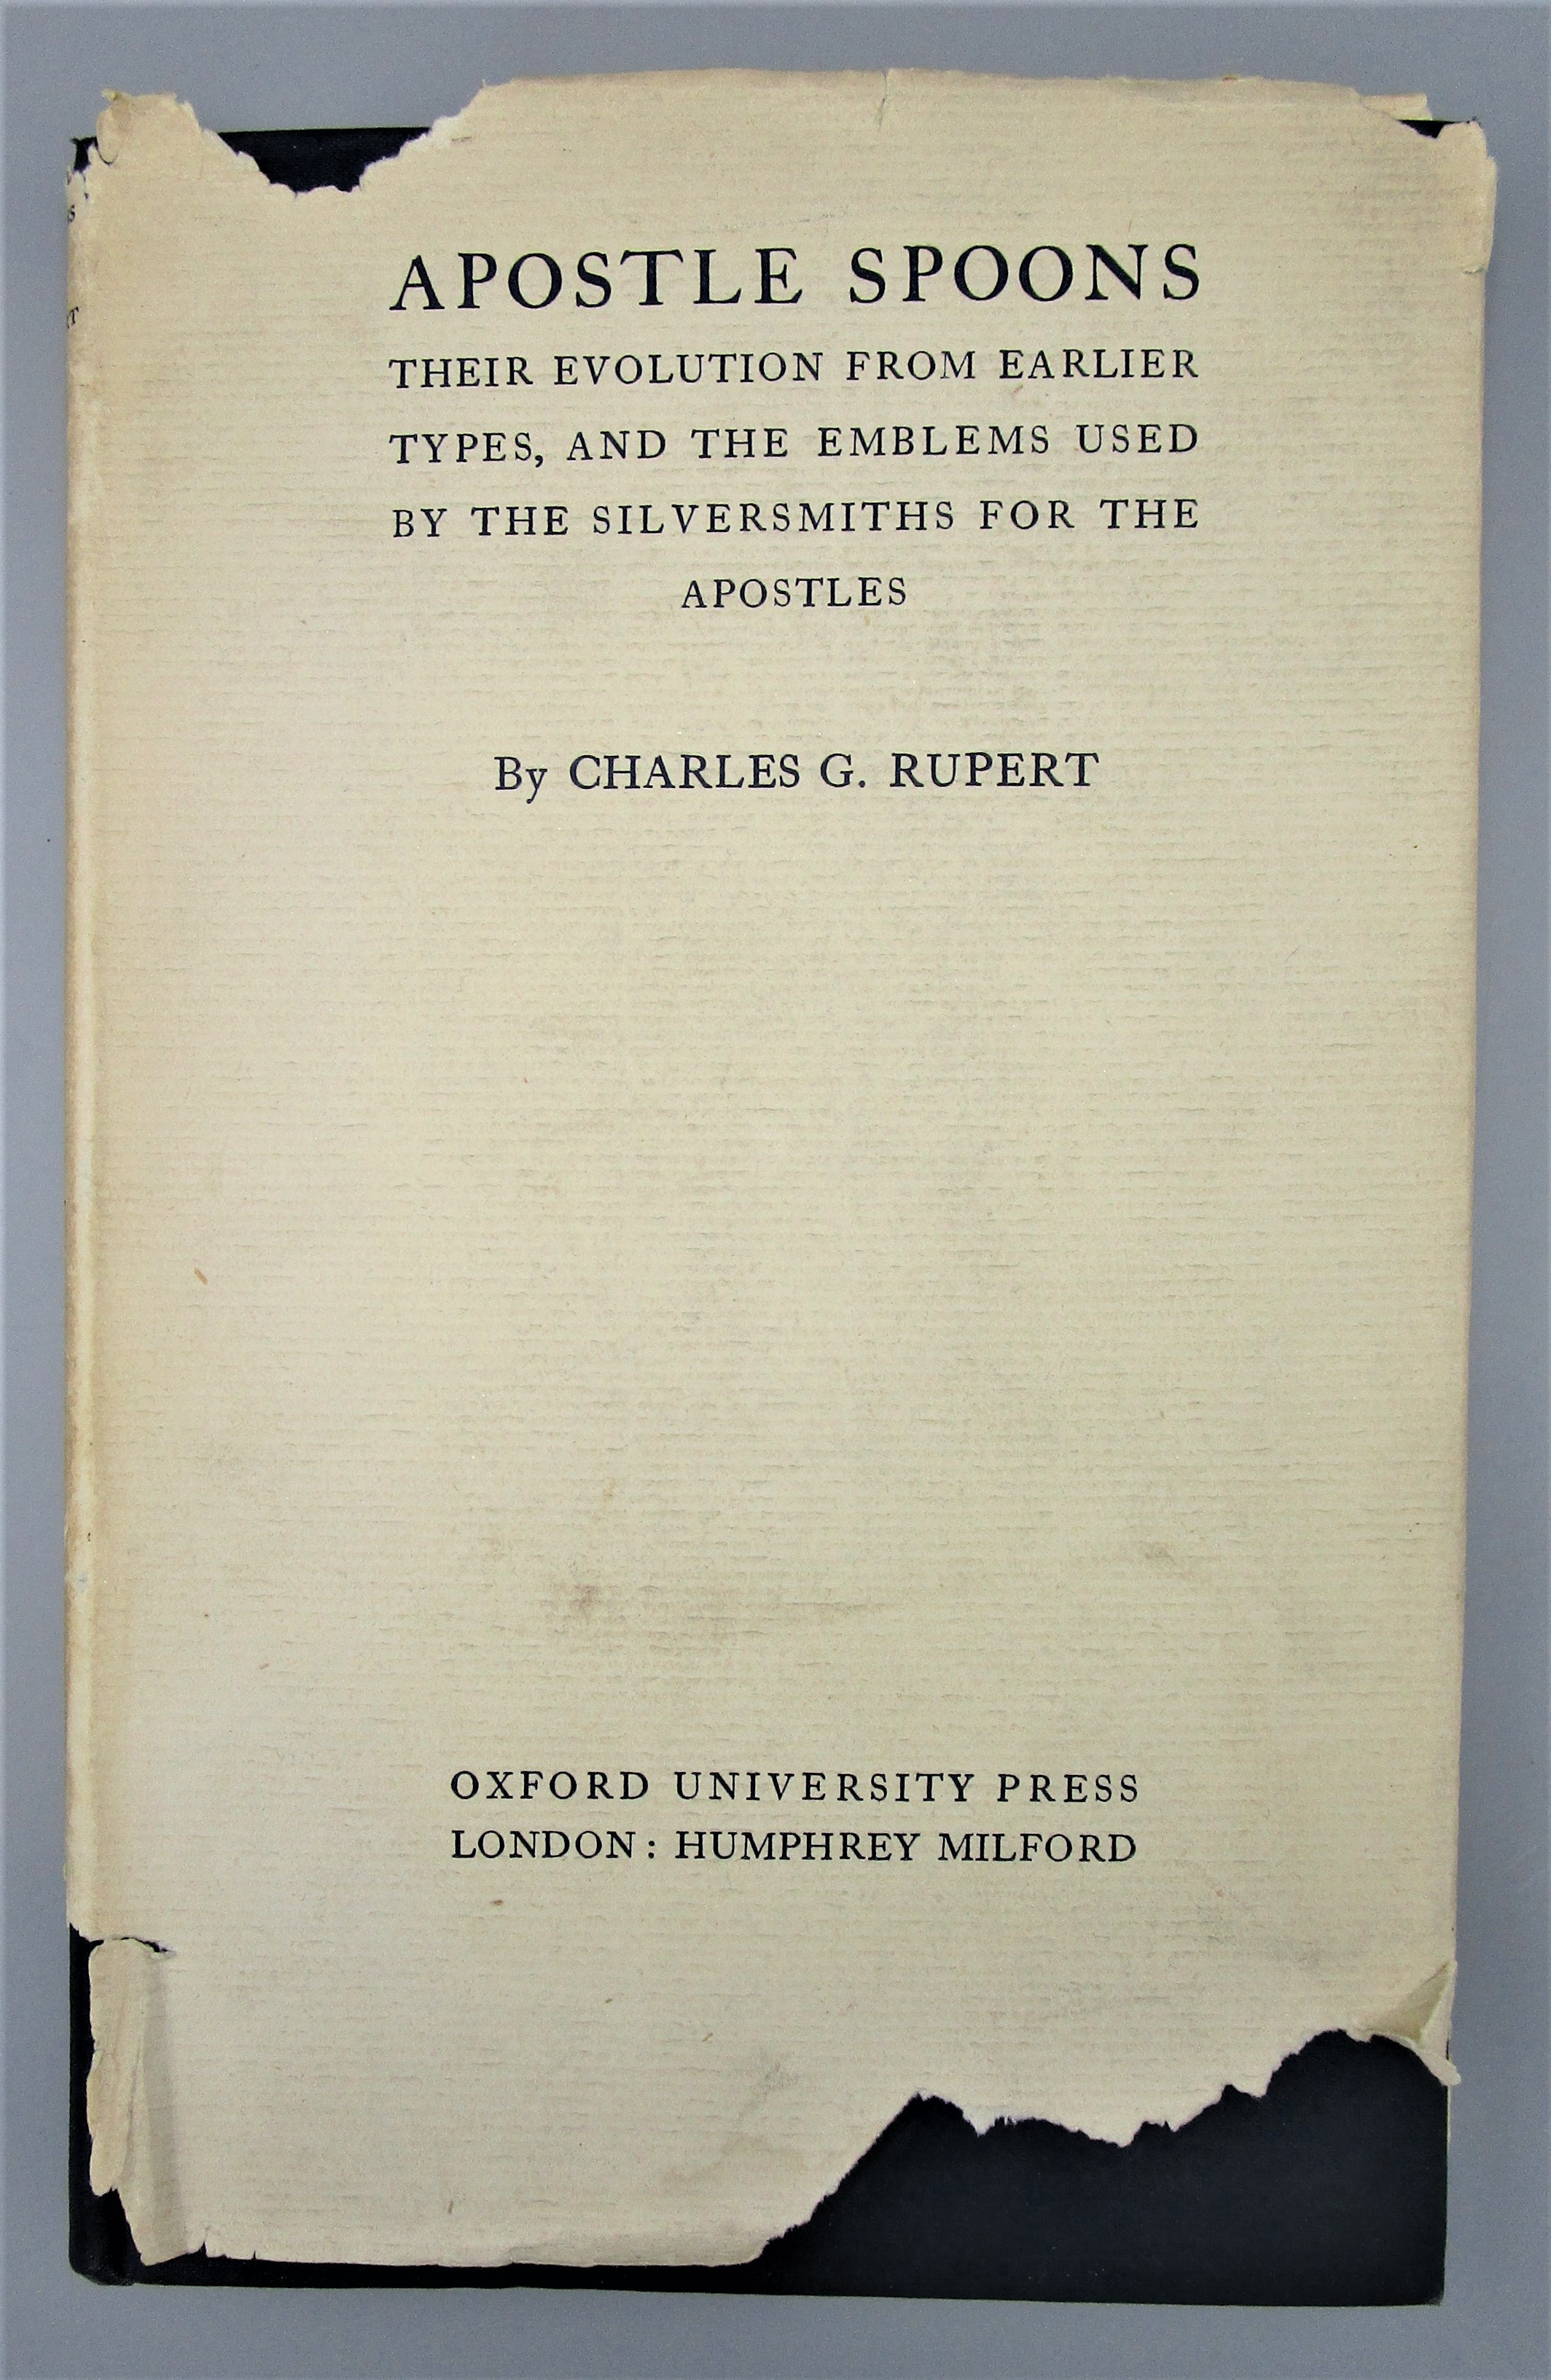 APOSTLE SPOONS, by Charles G. Rupert - 1929 [1st Ed]